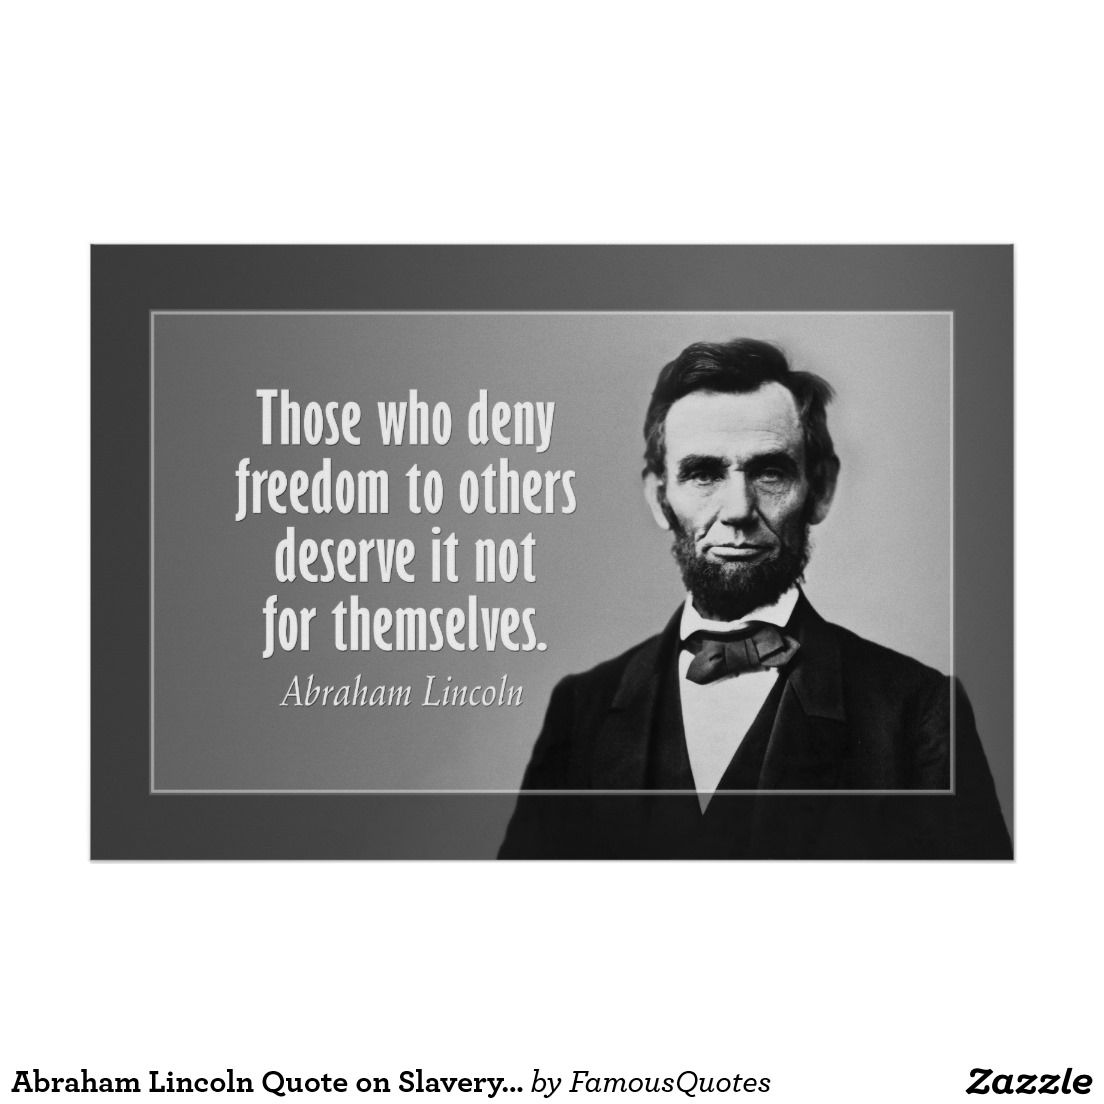 Abraham Lincoln Quotes On Slavery: Abraham Lincoln Quote On Slavery And Freedom Poster